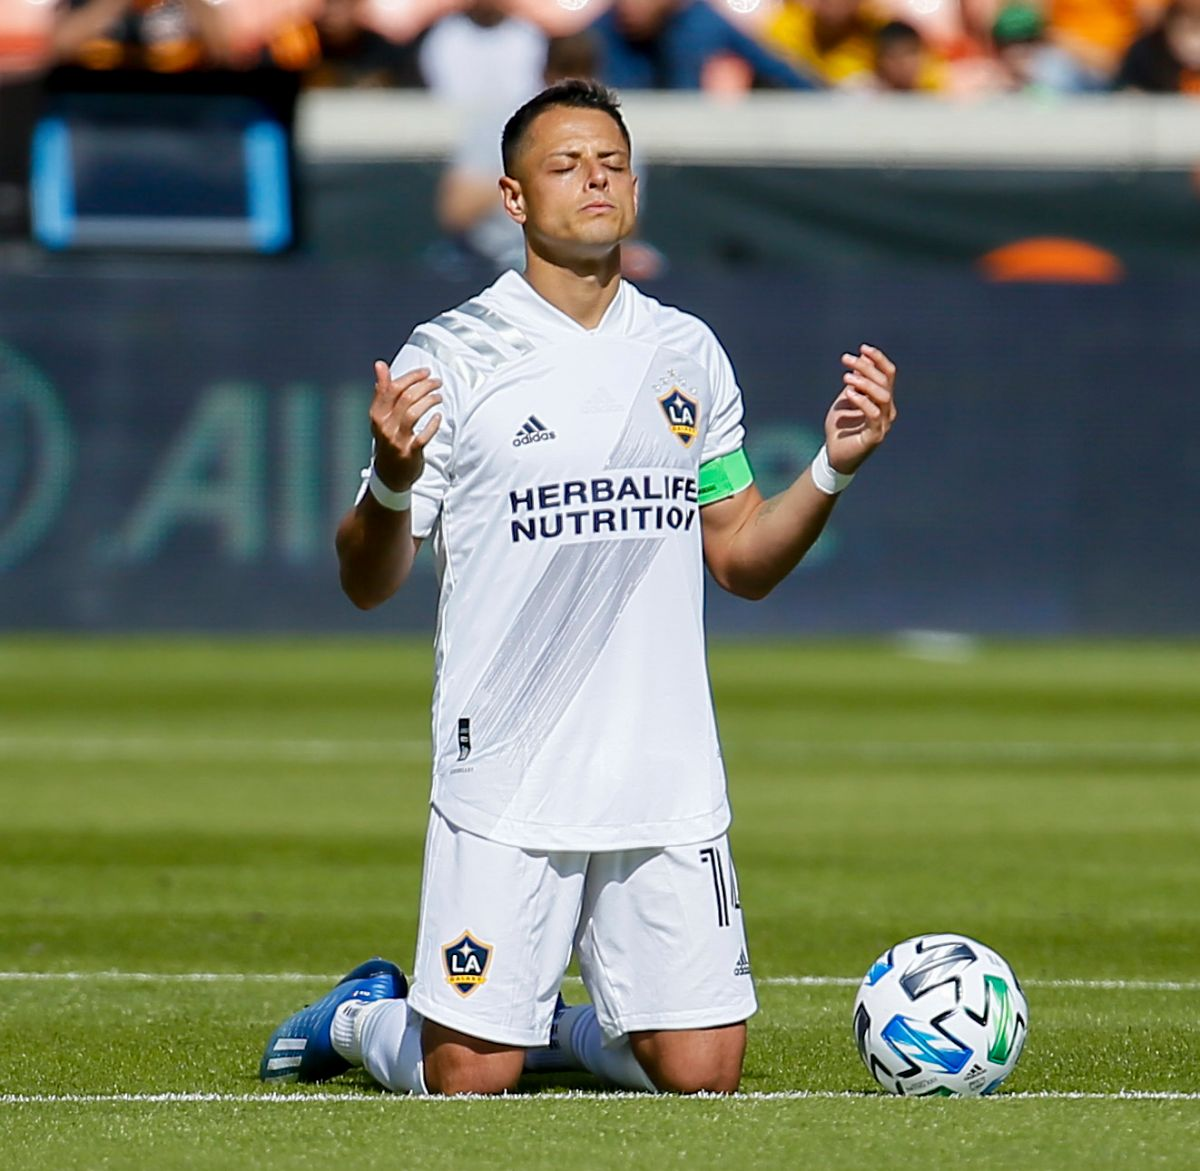 """She is dissatisfied: Sarah Kohan asked for a divorce from """"Chicharito"""" Hernández and he does not want to separate 